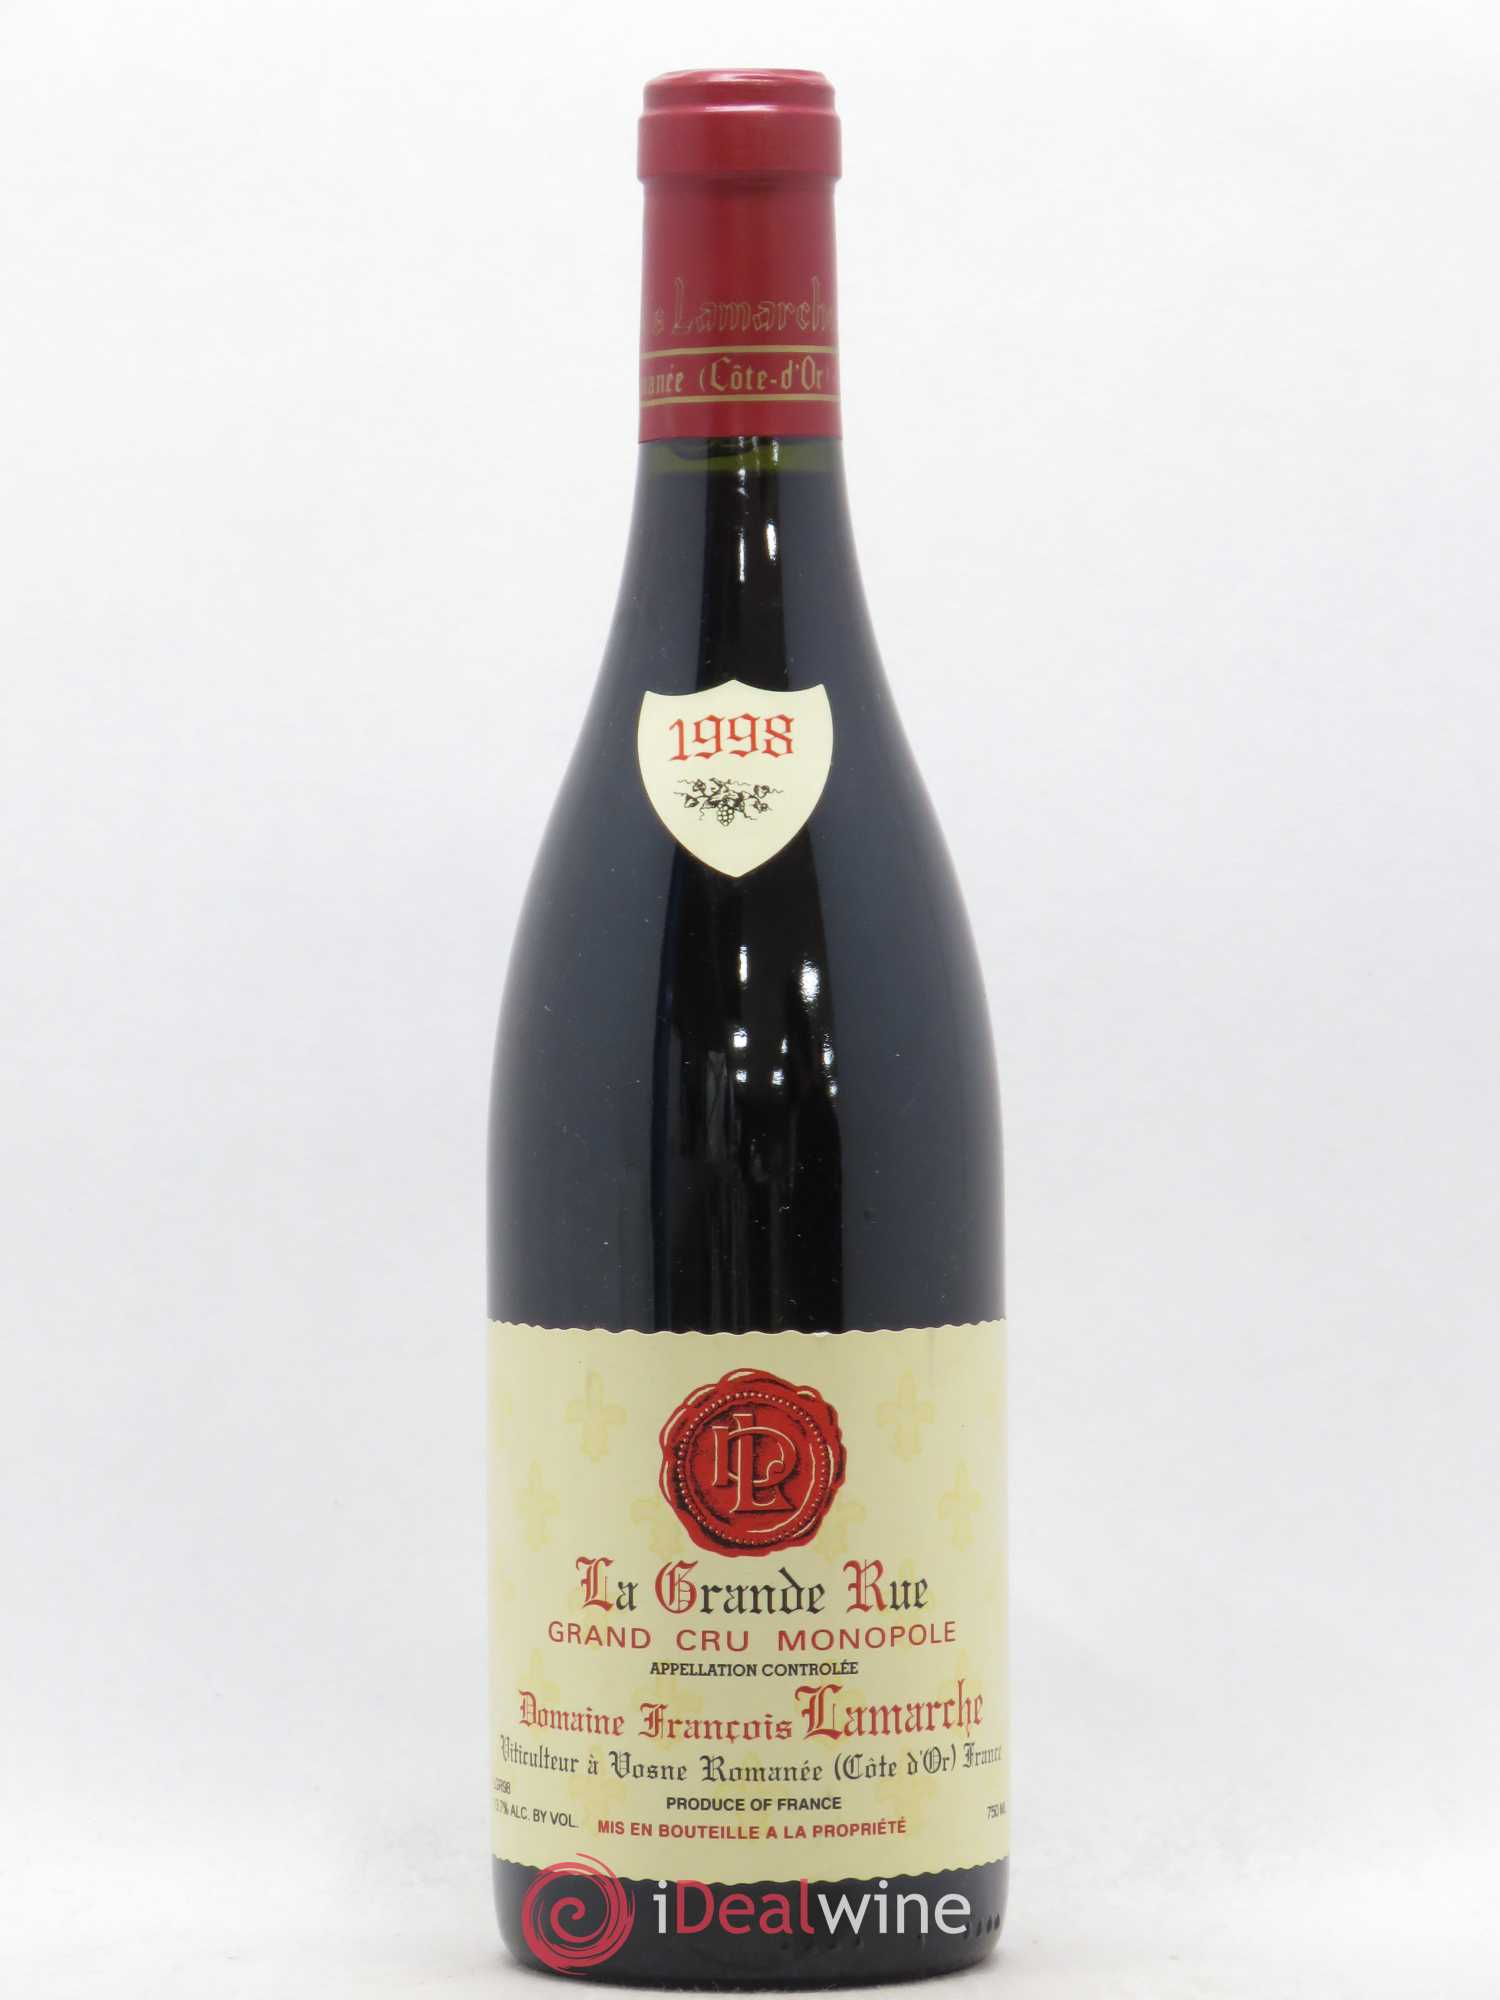 La Grande Rue Grand Cru François Lamarche  1998 - Lot of 1 Bottle